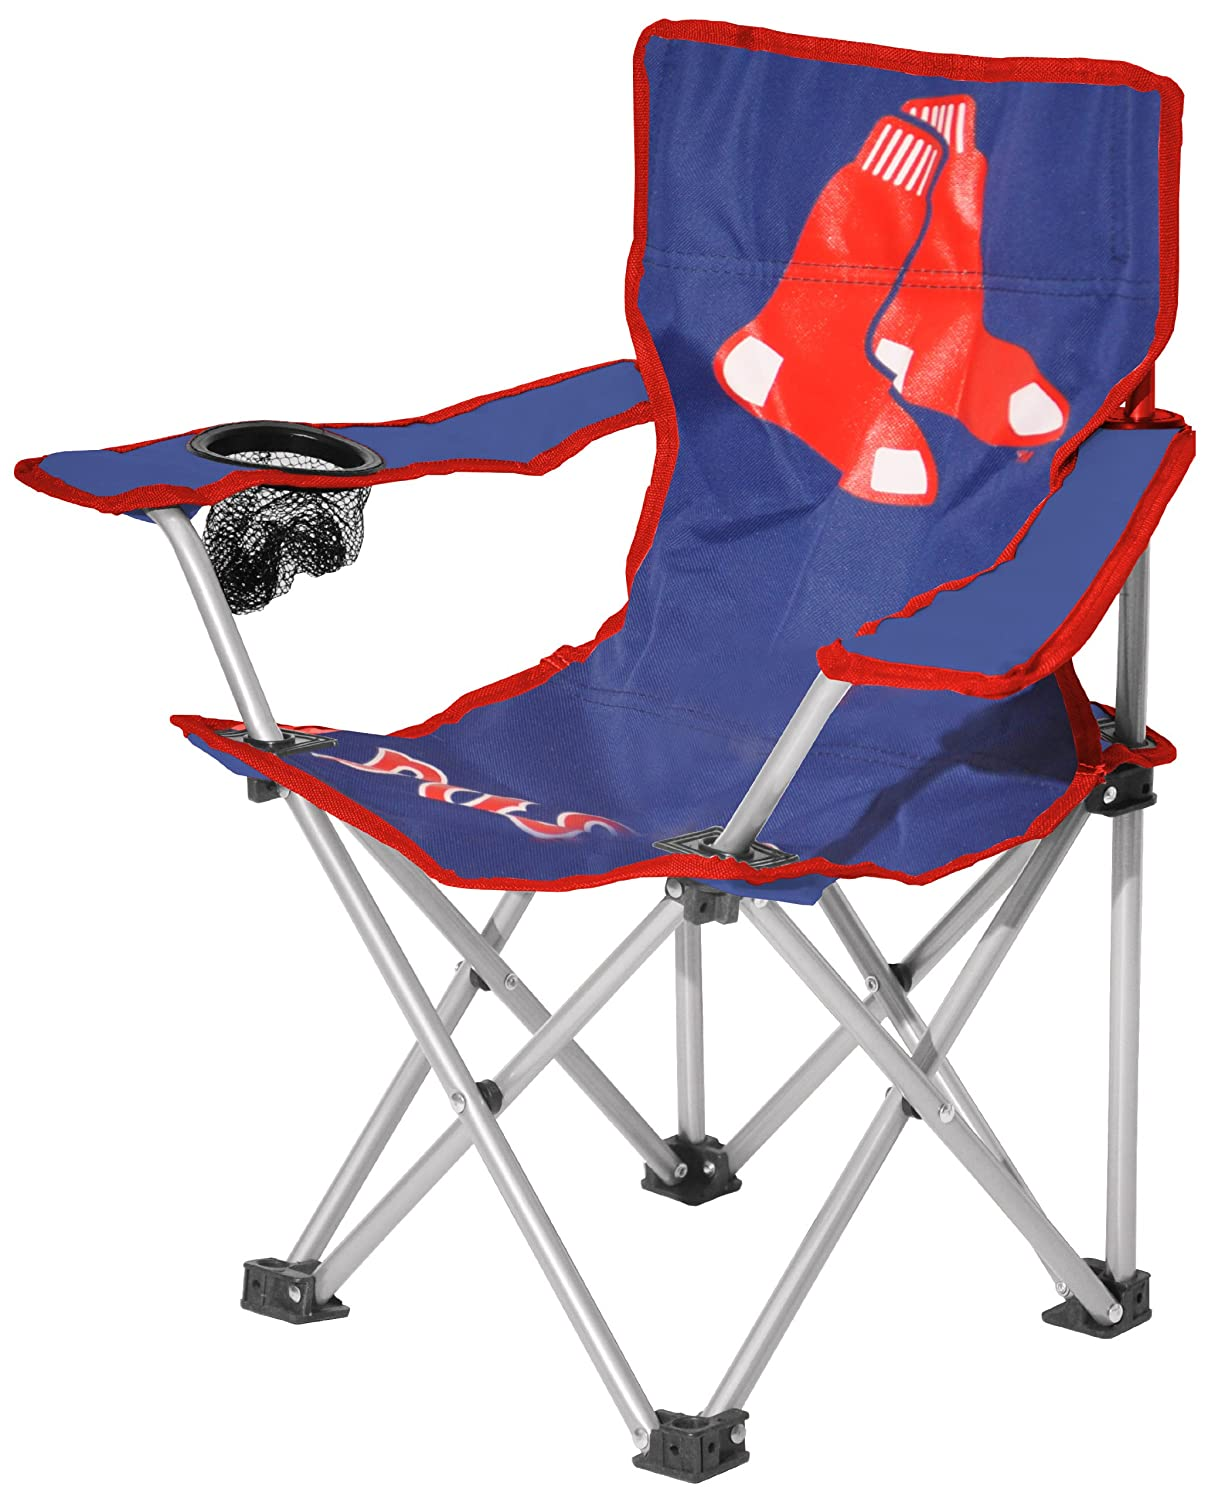 folding chair for toddler posturepedic office camping webnuggetz